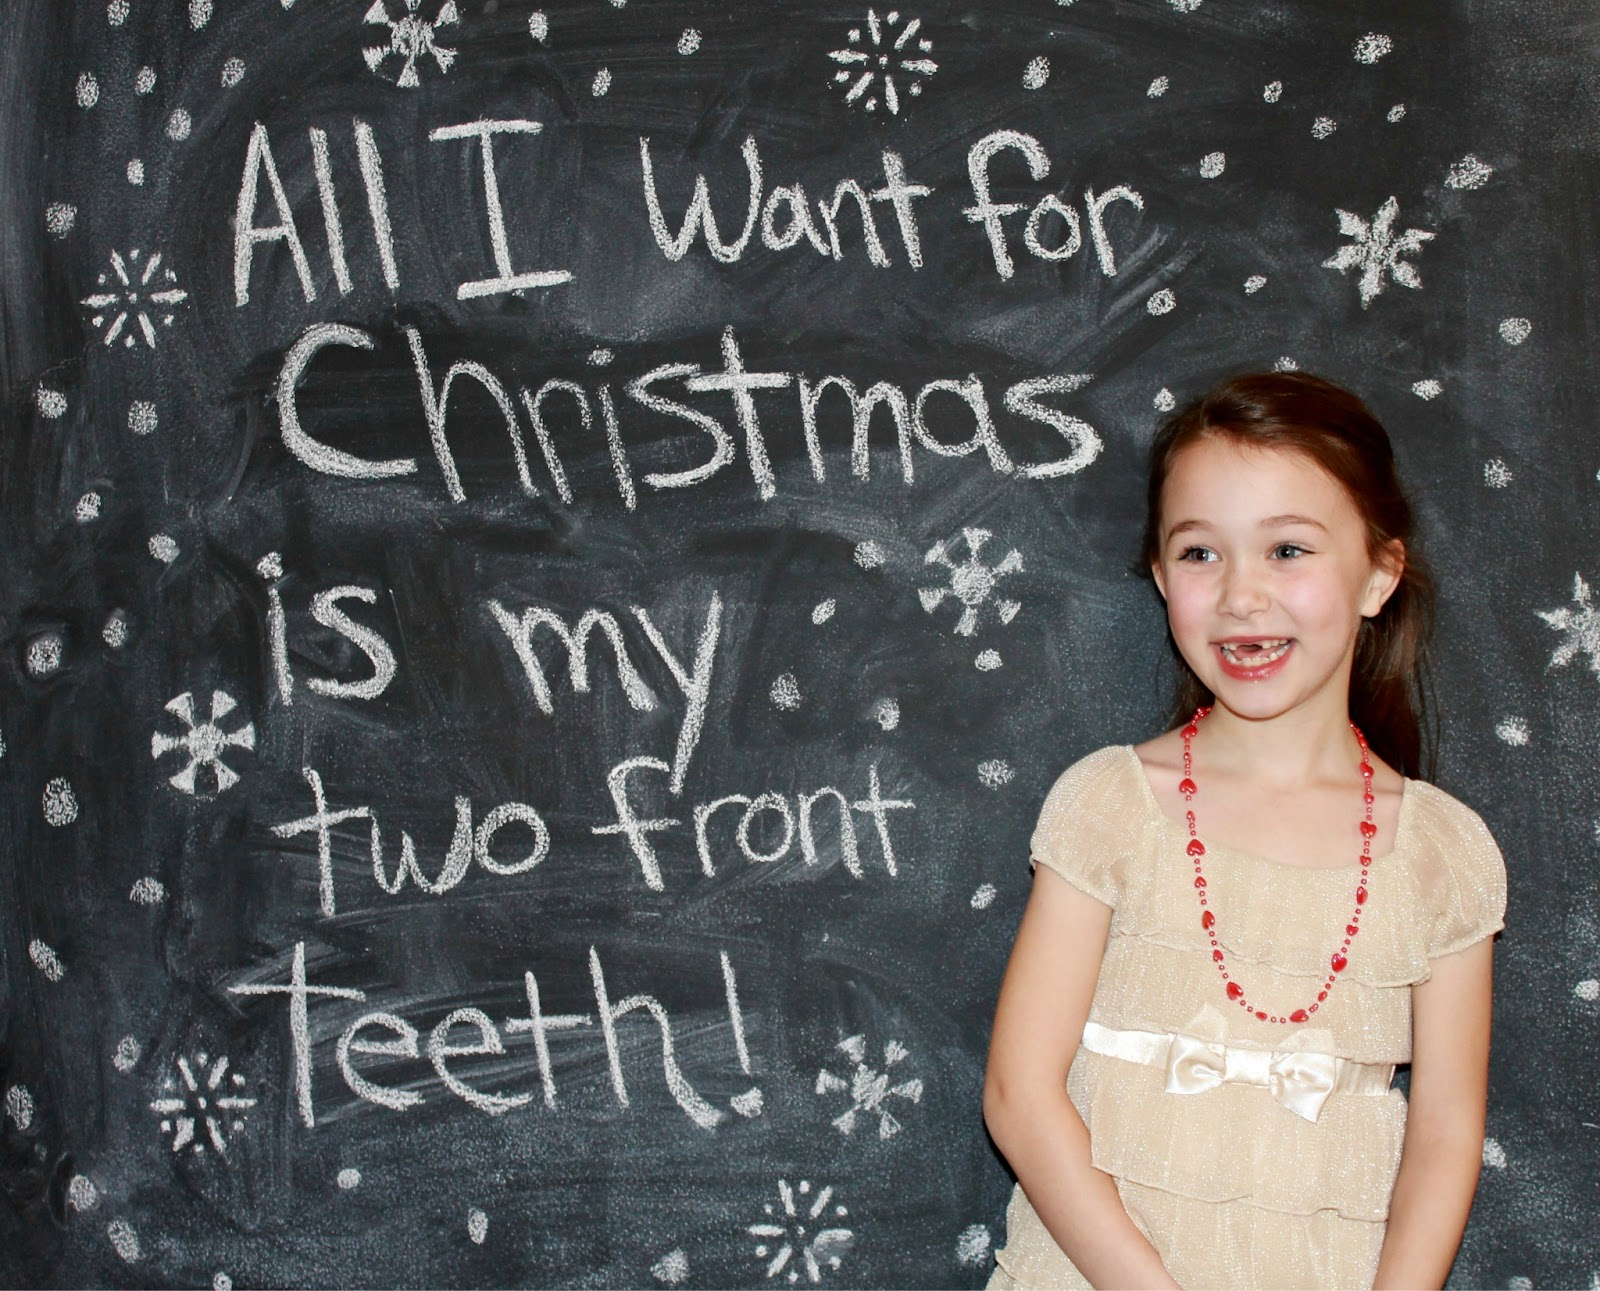 sixty fifth avenue christmas card picture 2012 two front teeth christmas card - All I Want For Christmas Is My Two Front Teeth